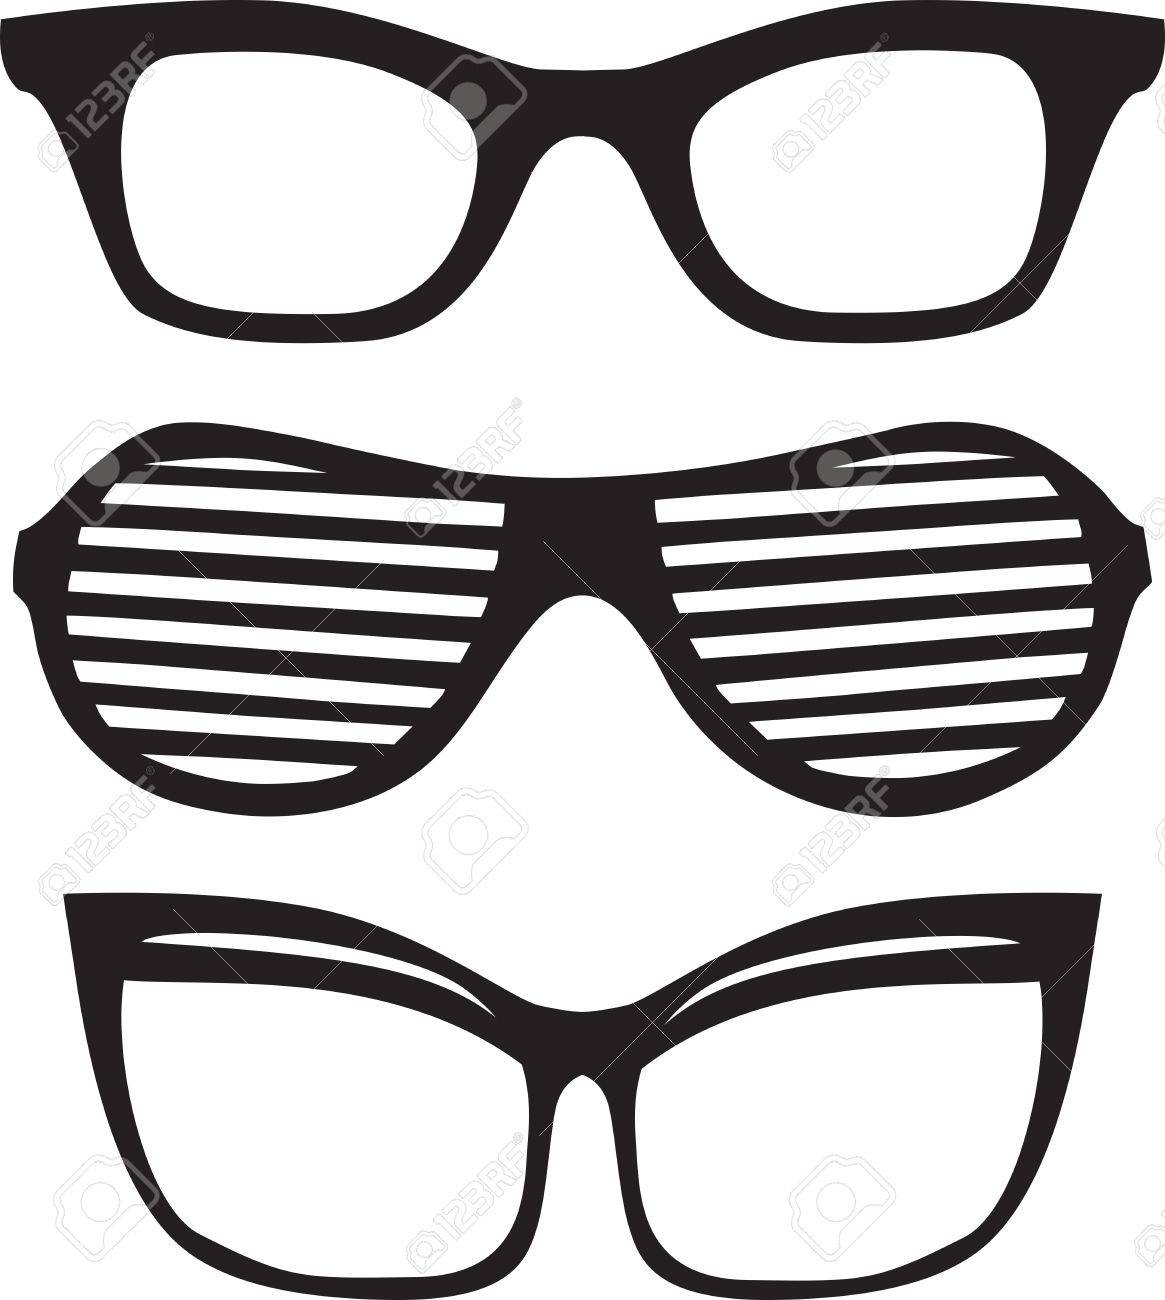 Three Different Glasses Vector Frames On White Background Royalty ...